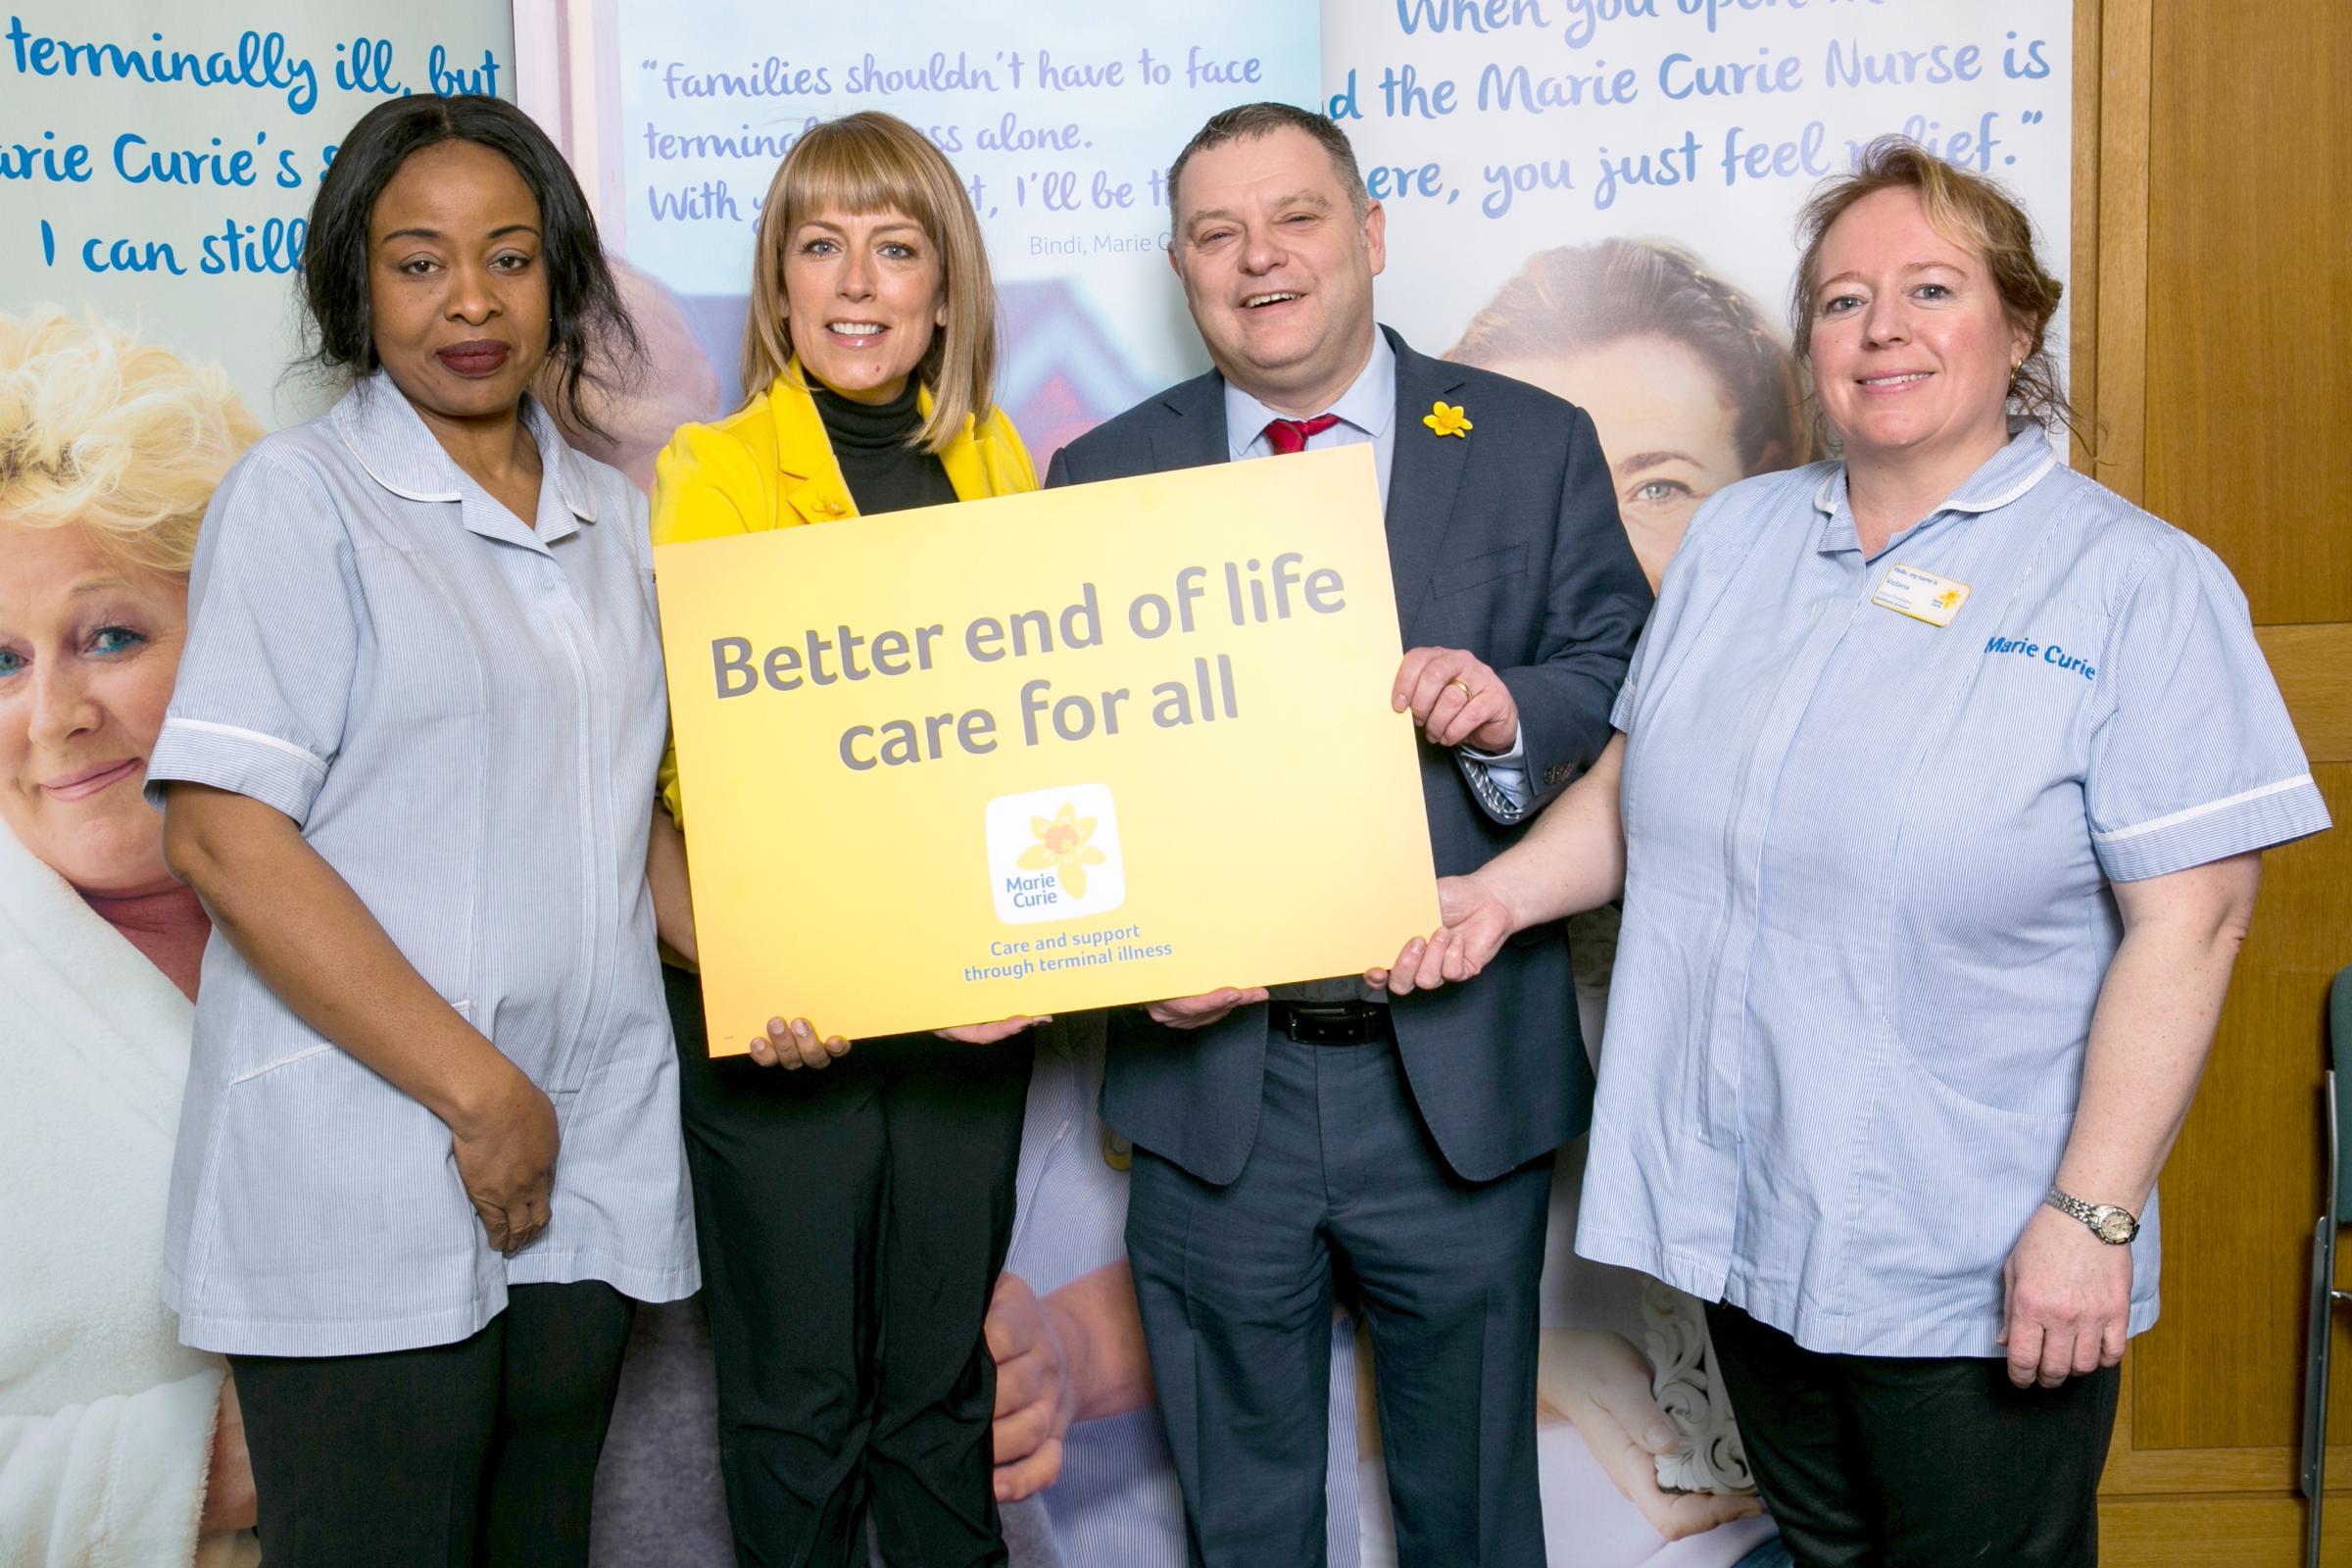 Weaver Vale MP Mike Amesbury joins Cold Feet TV star Fay Ripley and Marie Curie nurses Victoria Shodeko and Victoria Oluwalogbon to launch the charity's Great Daffodil Appeal